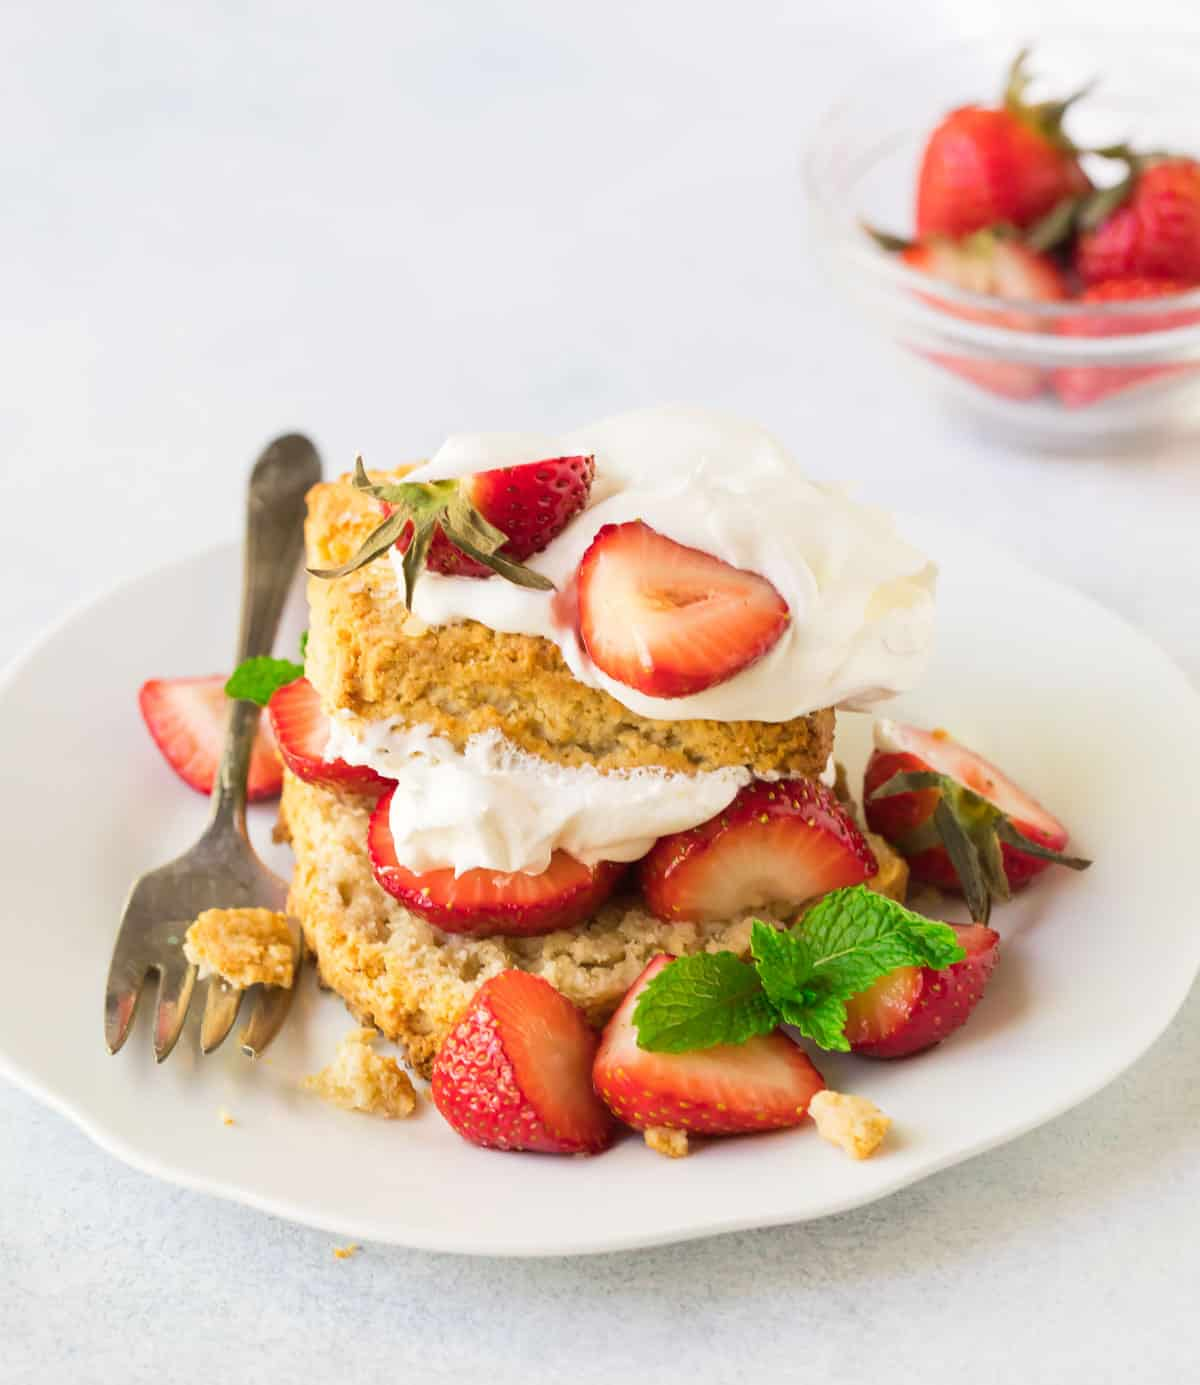 Tender, biscuit-style gluten free strawberry shortcakes made with oatmeal topped with whipped cream and berries on a white plate with a fork.